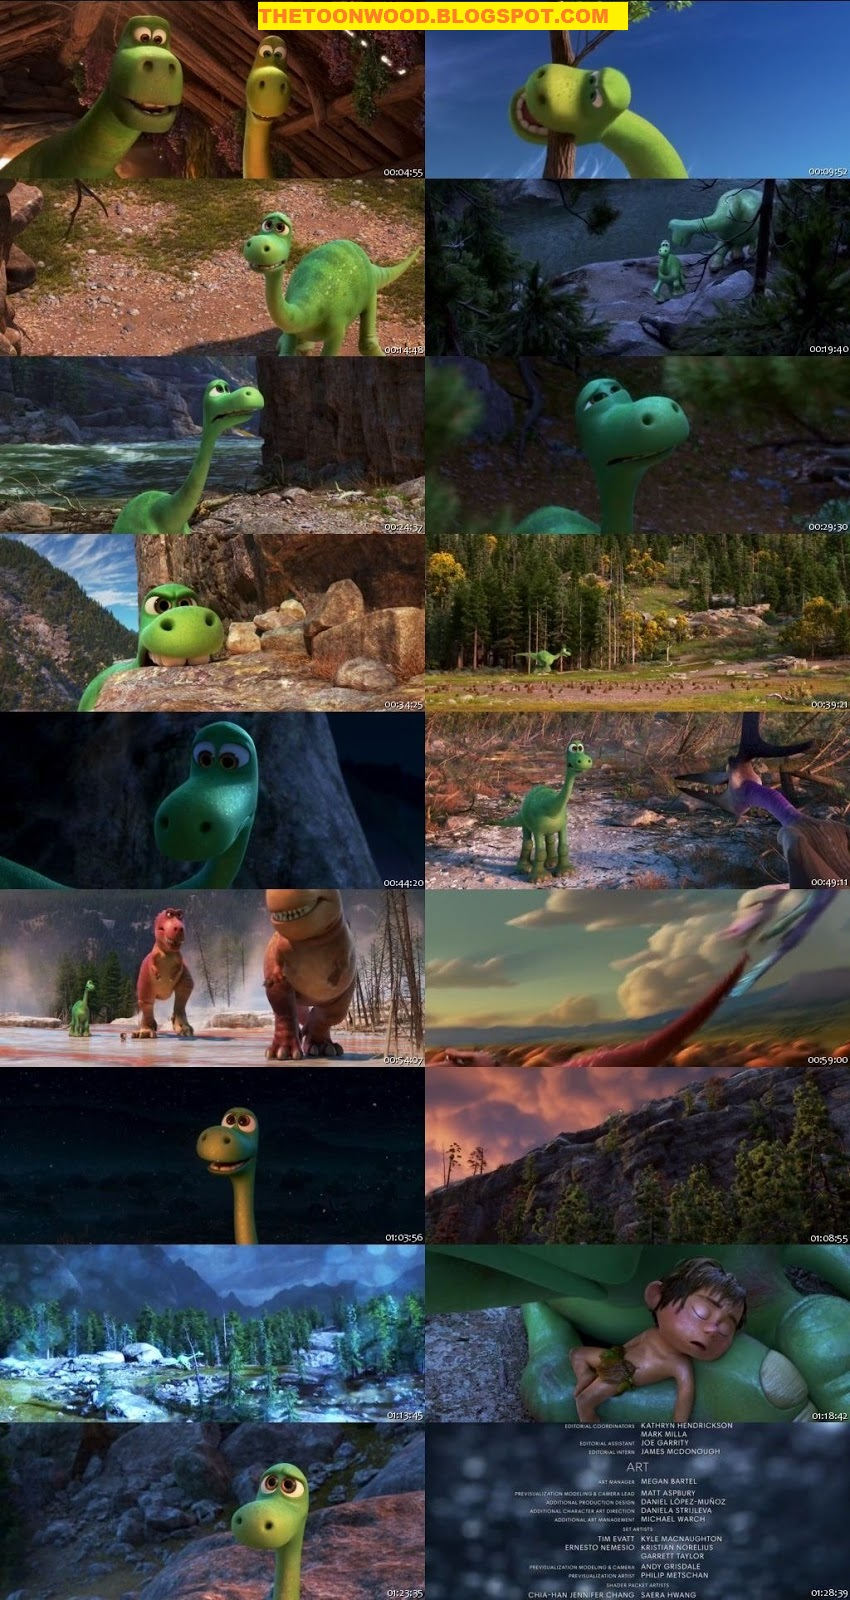 """The Good Dinosaur (2015)""  In Hindi Dubbed Full Movies In 720p,Hd Only On TOONWOOD"